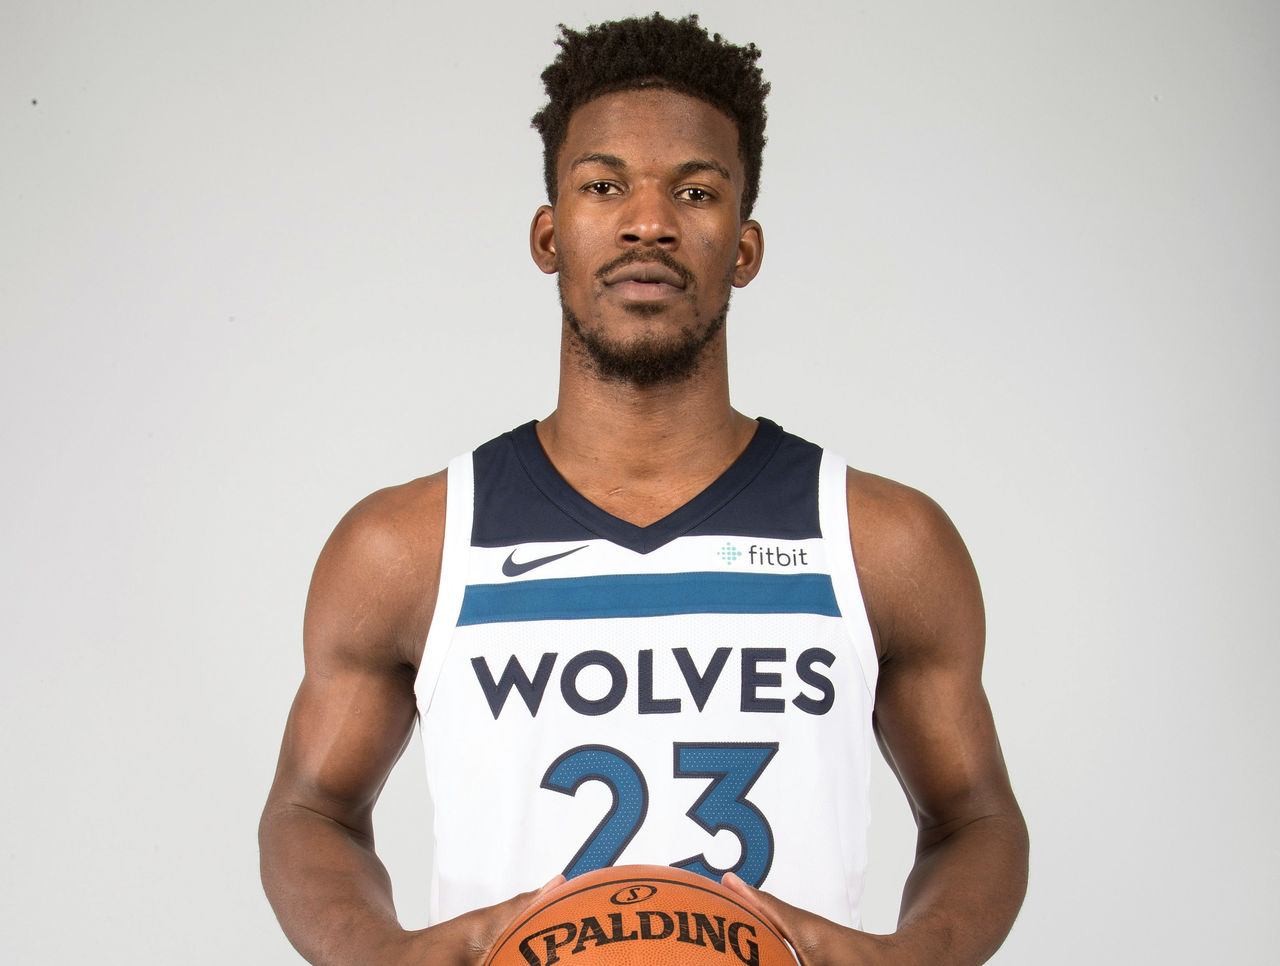 Cropped 2017 09 22t215619z 1721238997 nocid rtrmadp 3 nba minnesota timberwolves media day